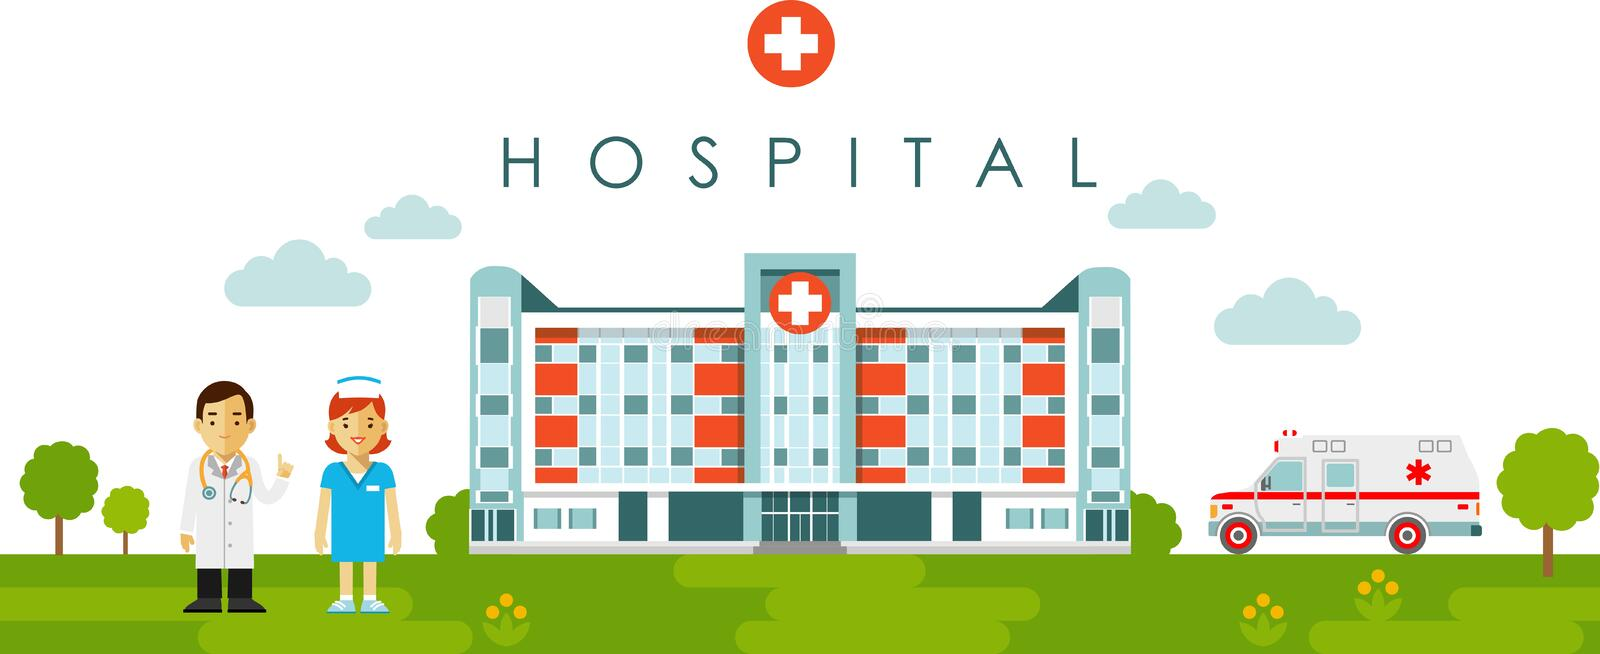 Medical concept with hospital building and doctor in flat style royalty free illustration